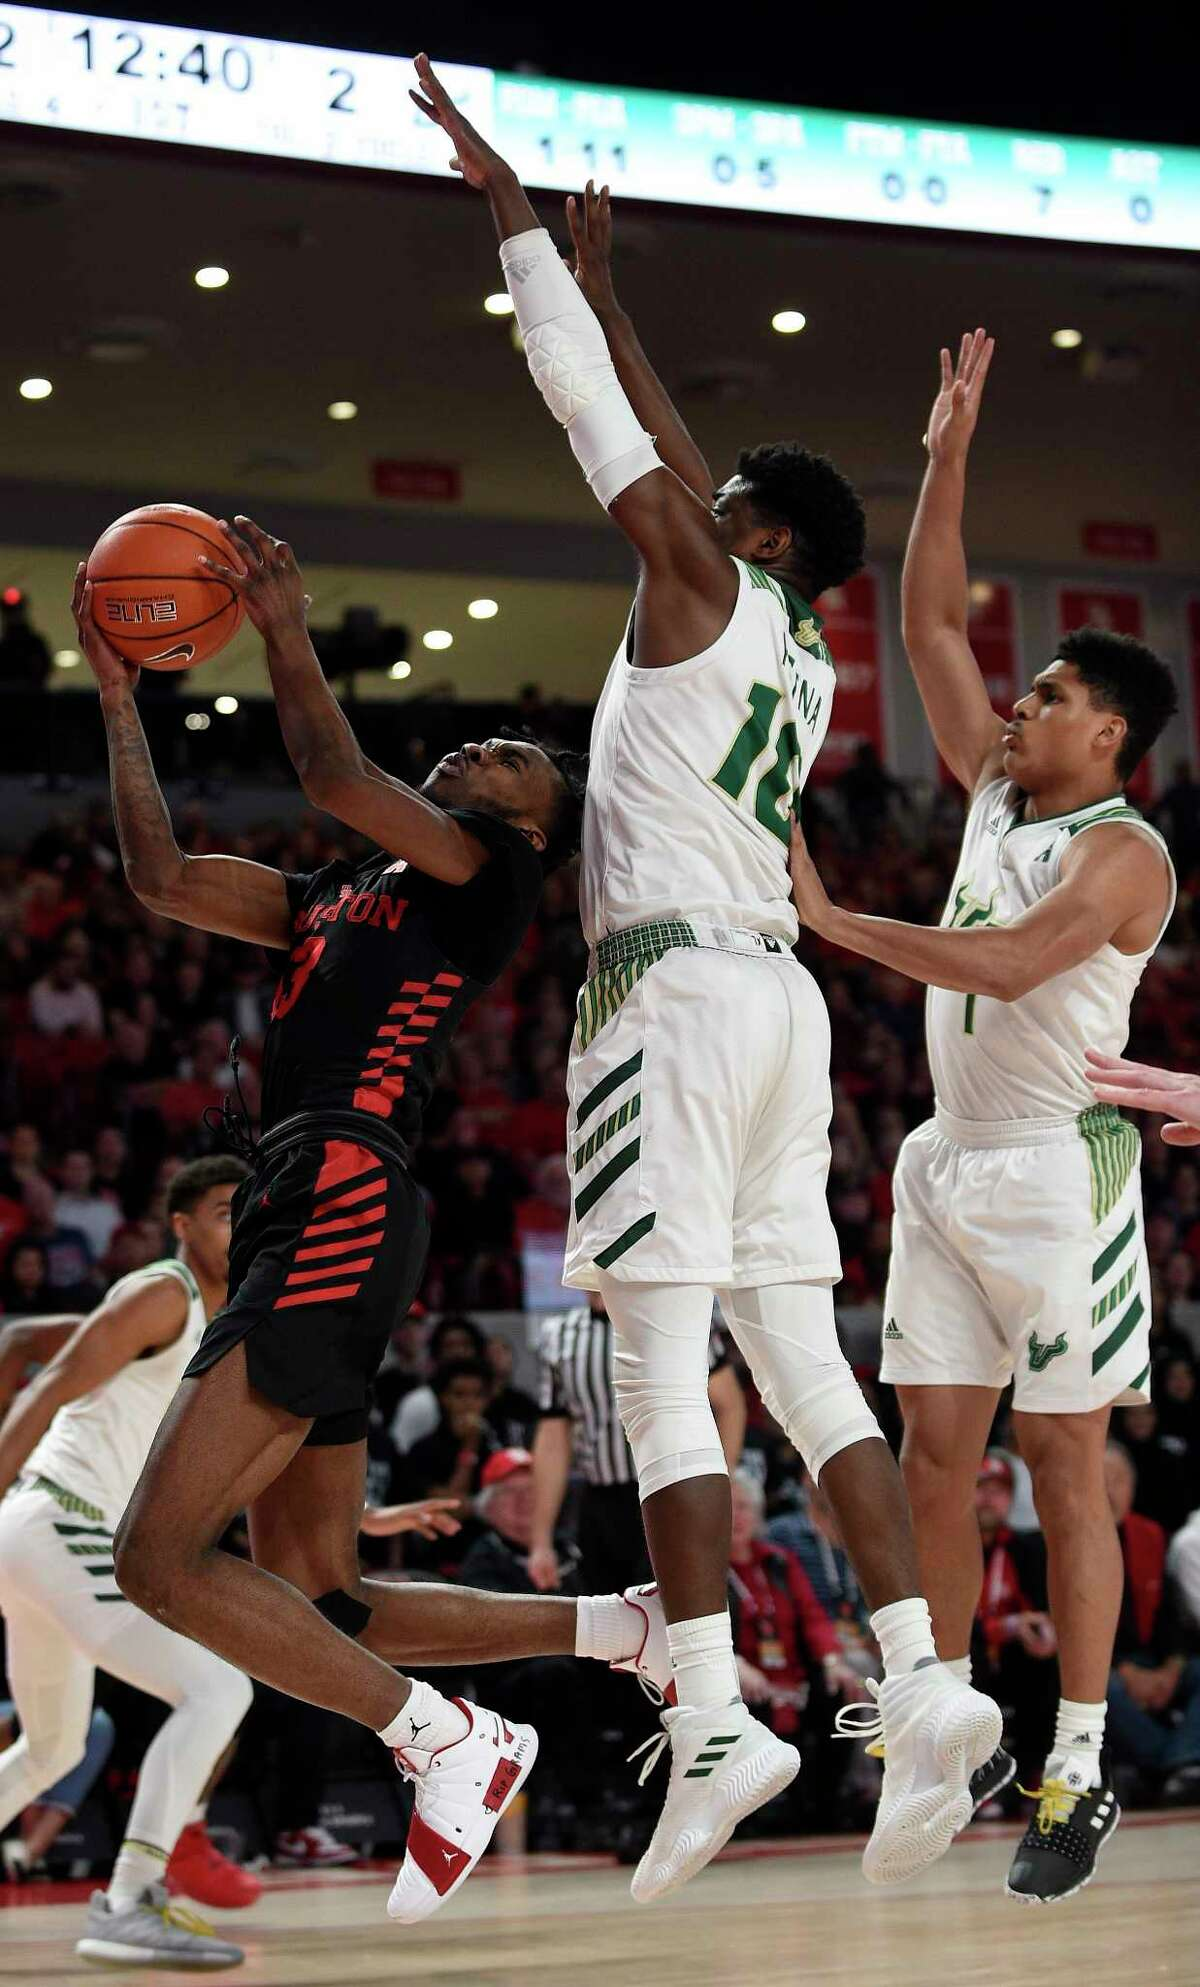 Houston guard Armoni Brooks (3) drives to the basket as South Florida forward Alexis Yetna, center, defends during the first half of an NCAA college basketball game, Saturday, Feb. 23, 2019, in Houston.